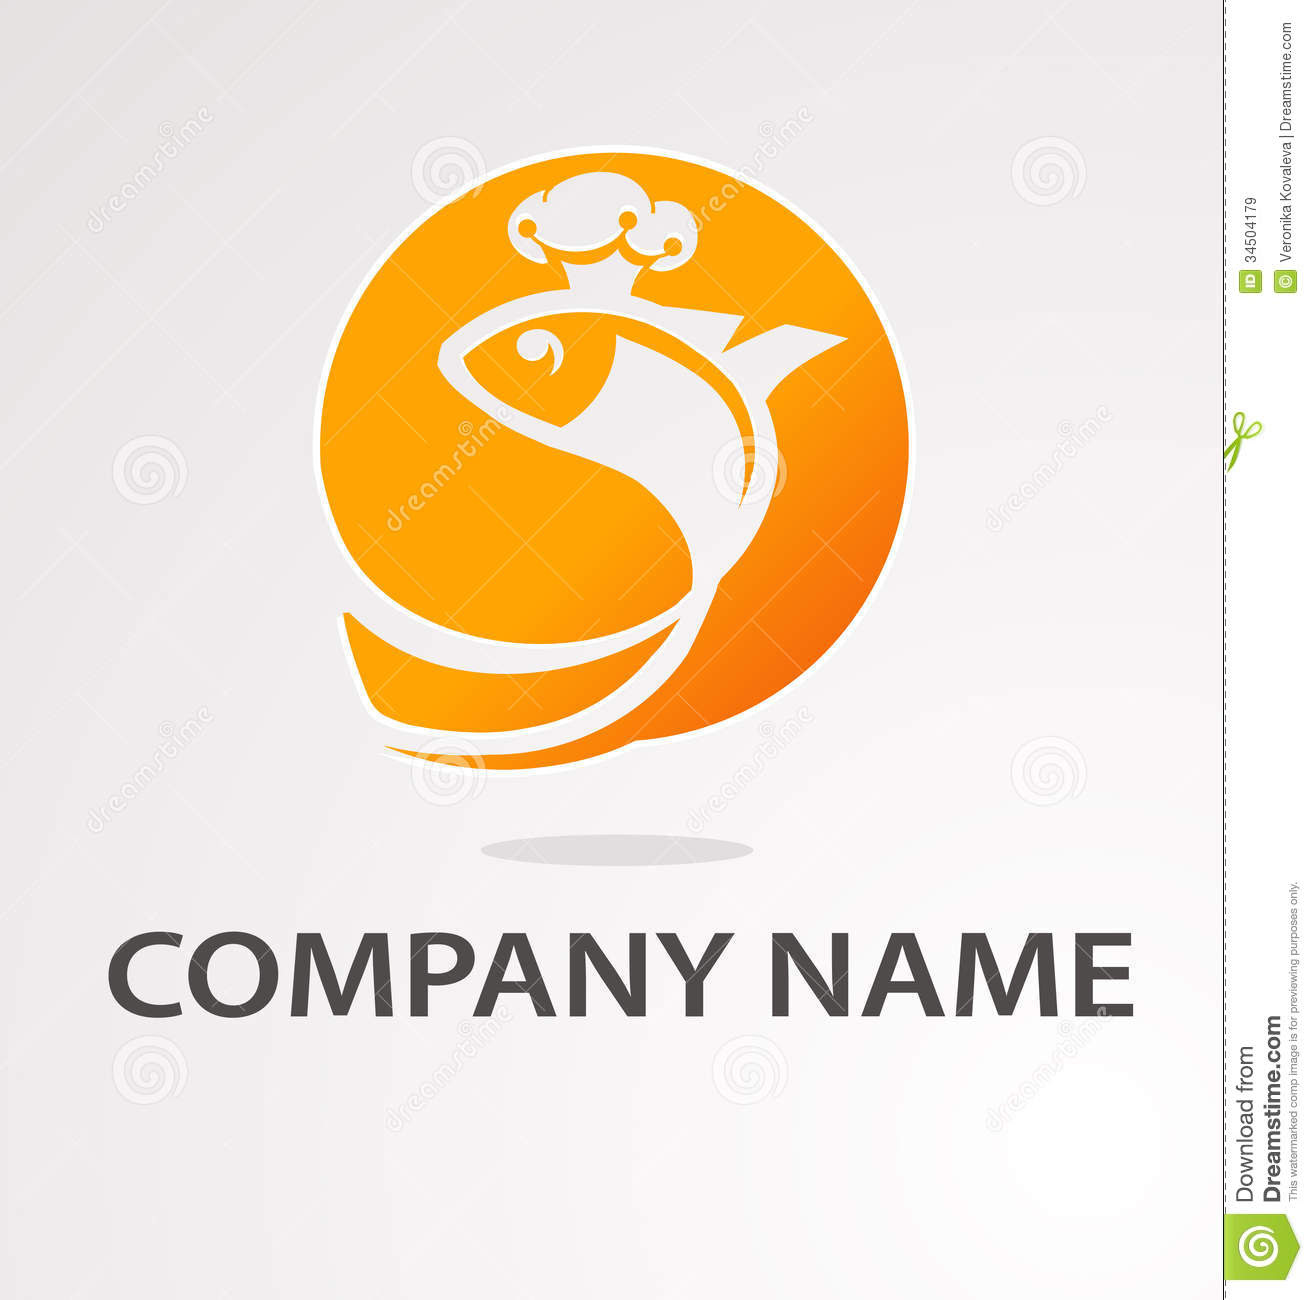 Logo With Golden Fish Royalty Free Stock Images - Image: 34504179